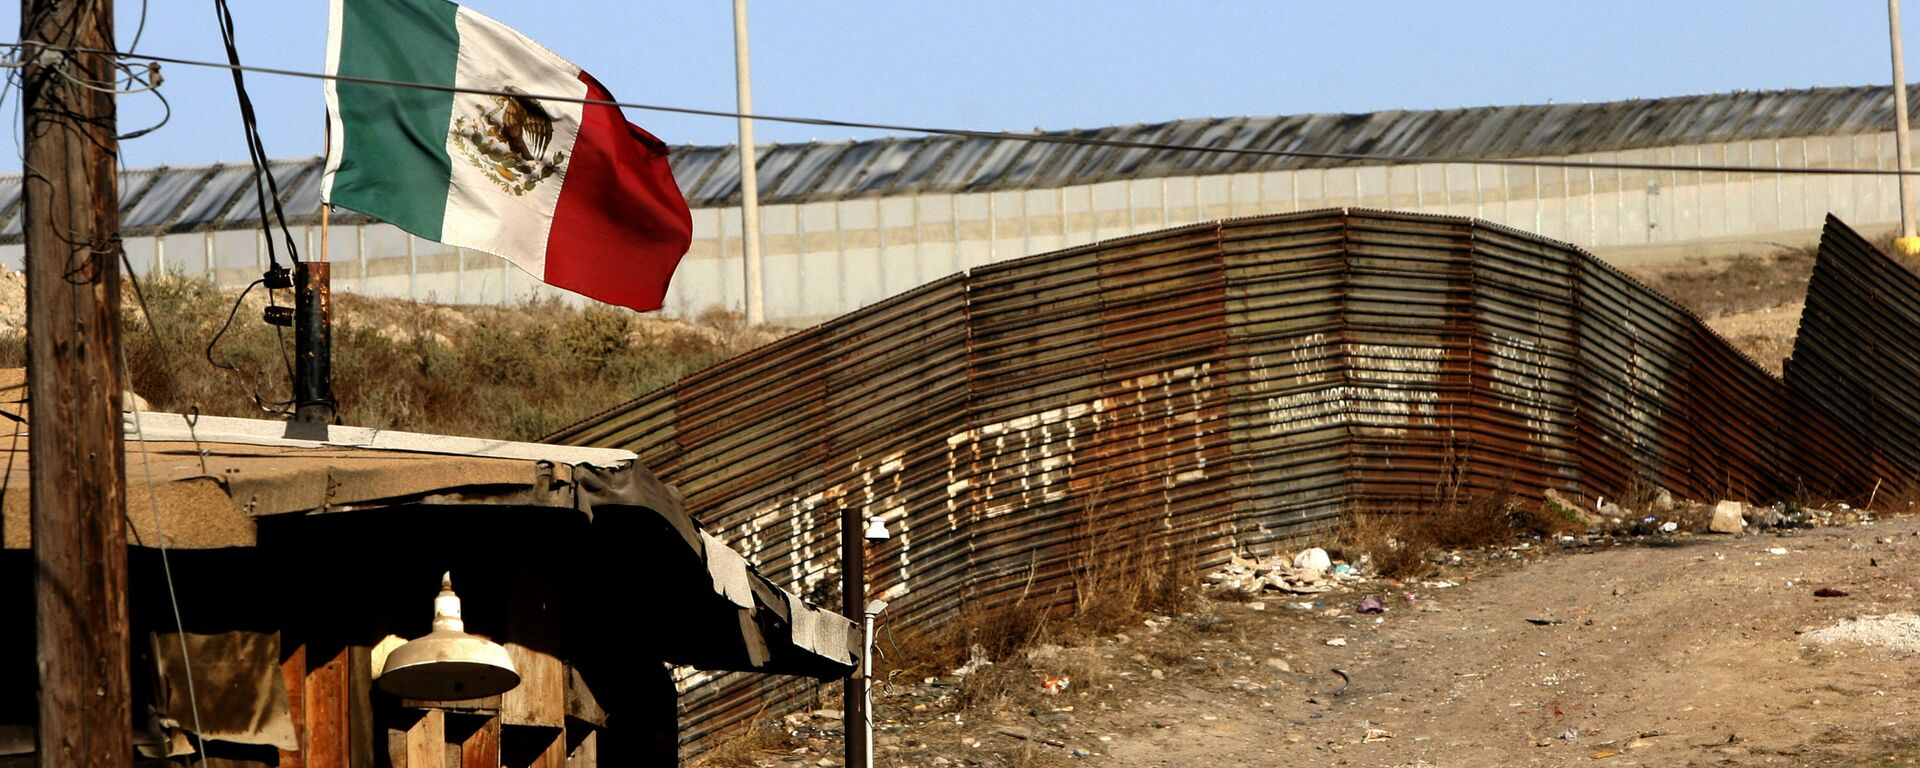 A Mexican flag waves close to the wall which separates Mexico from the United States 24 January 2006, in Tijuana, state of Baja California - Sputnik Mundo, 1920, 10.06.2021